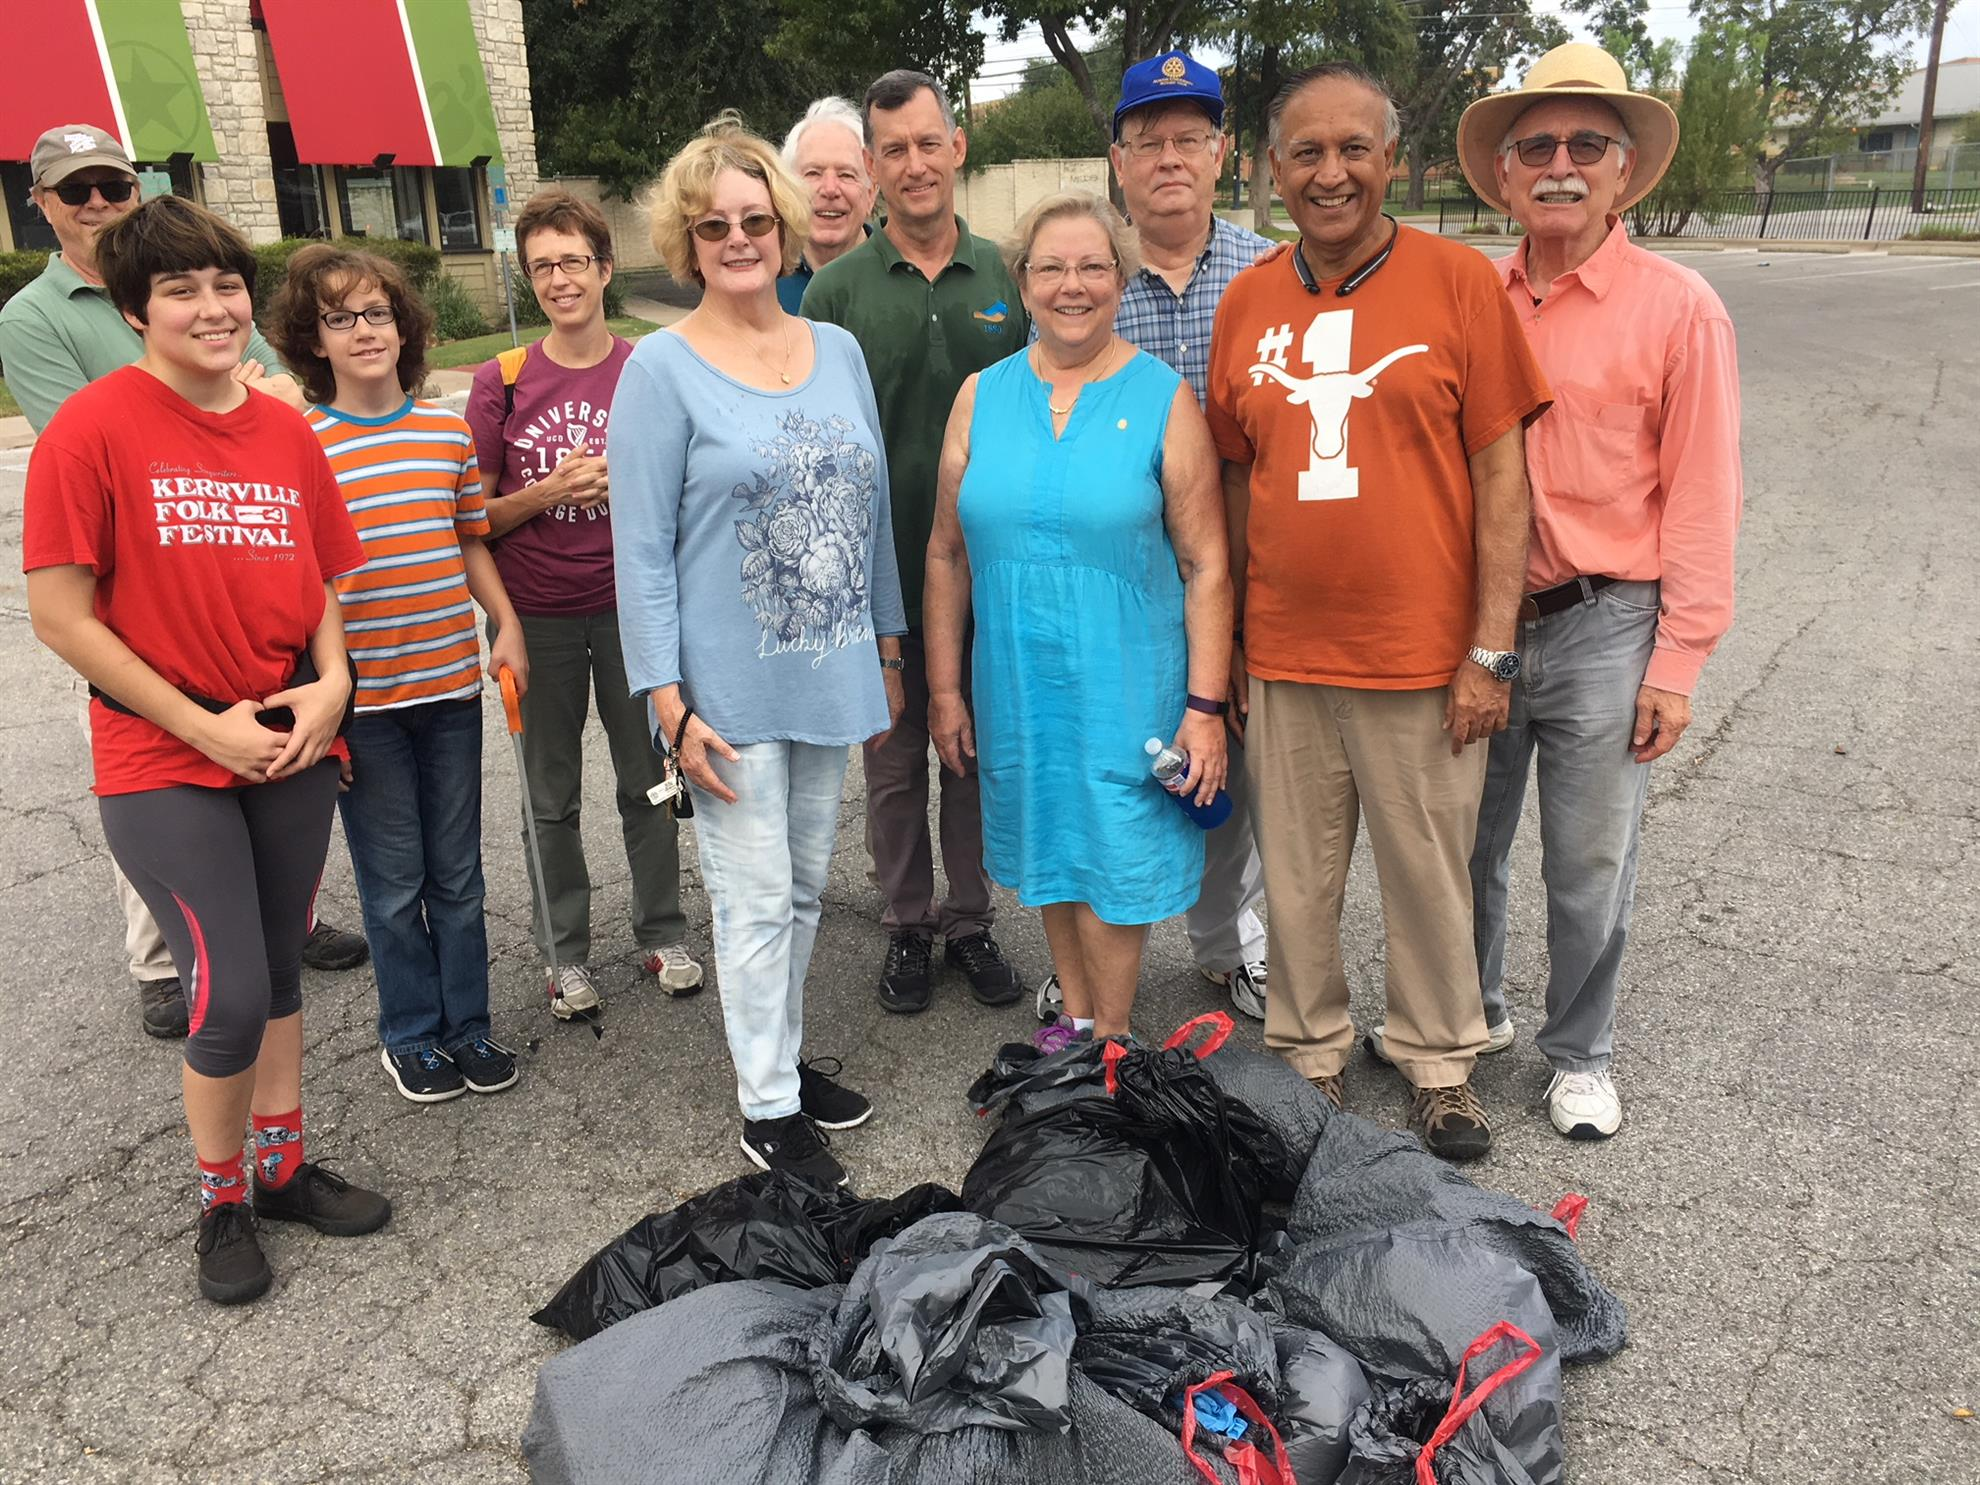 Austin University Area Rotary Keeping Austin Beautiful